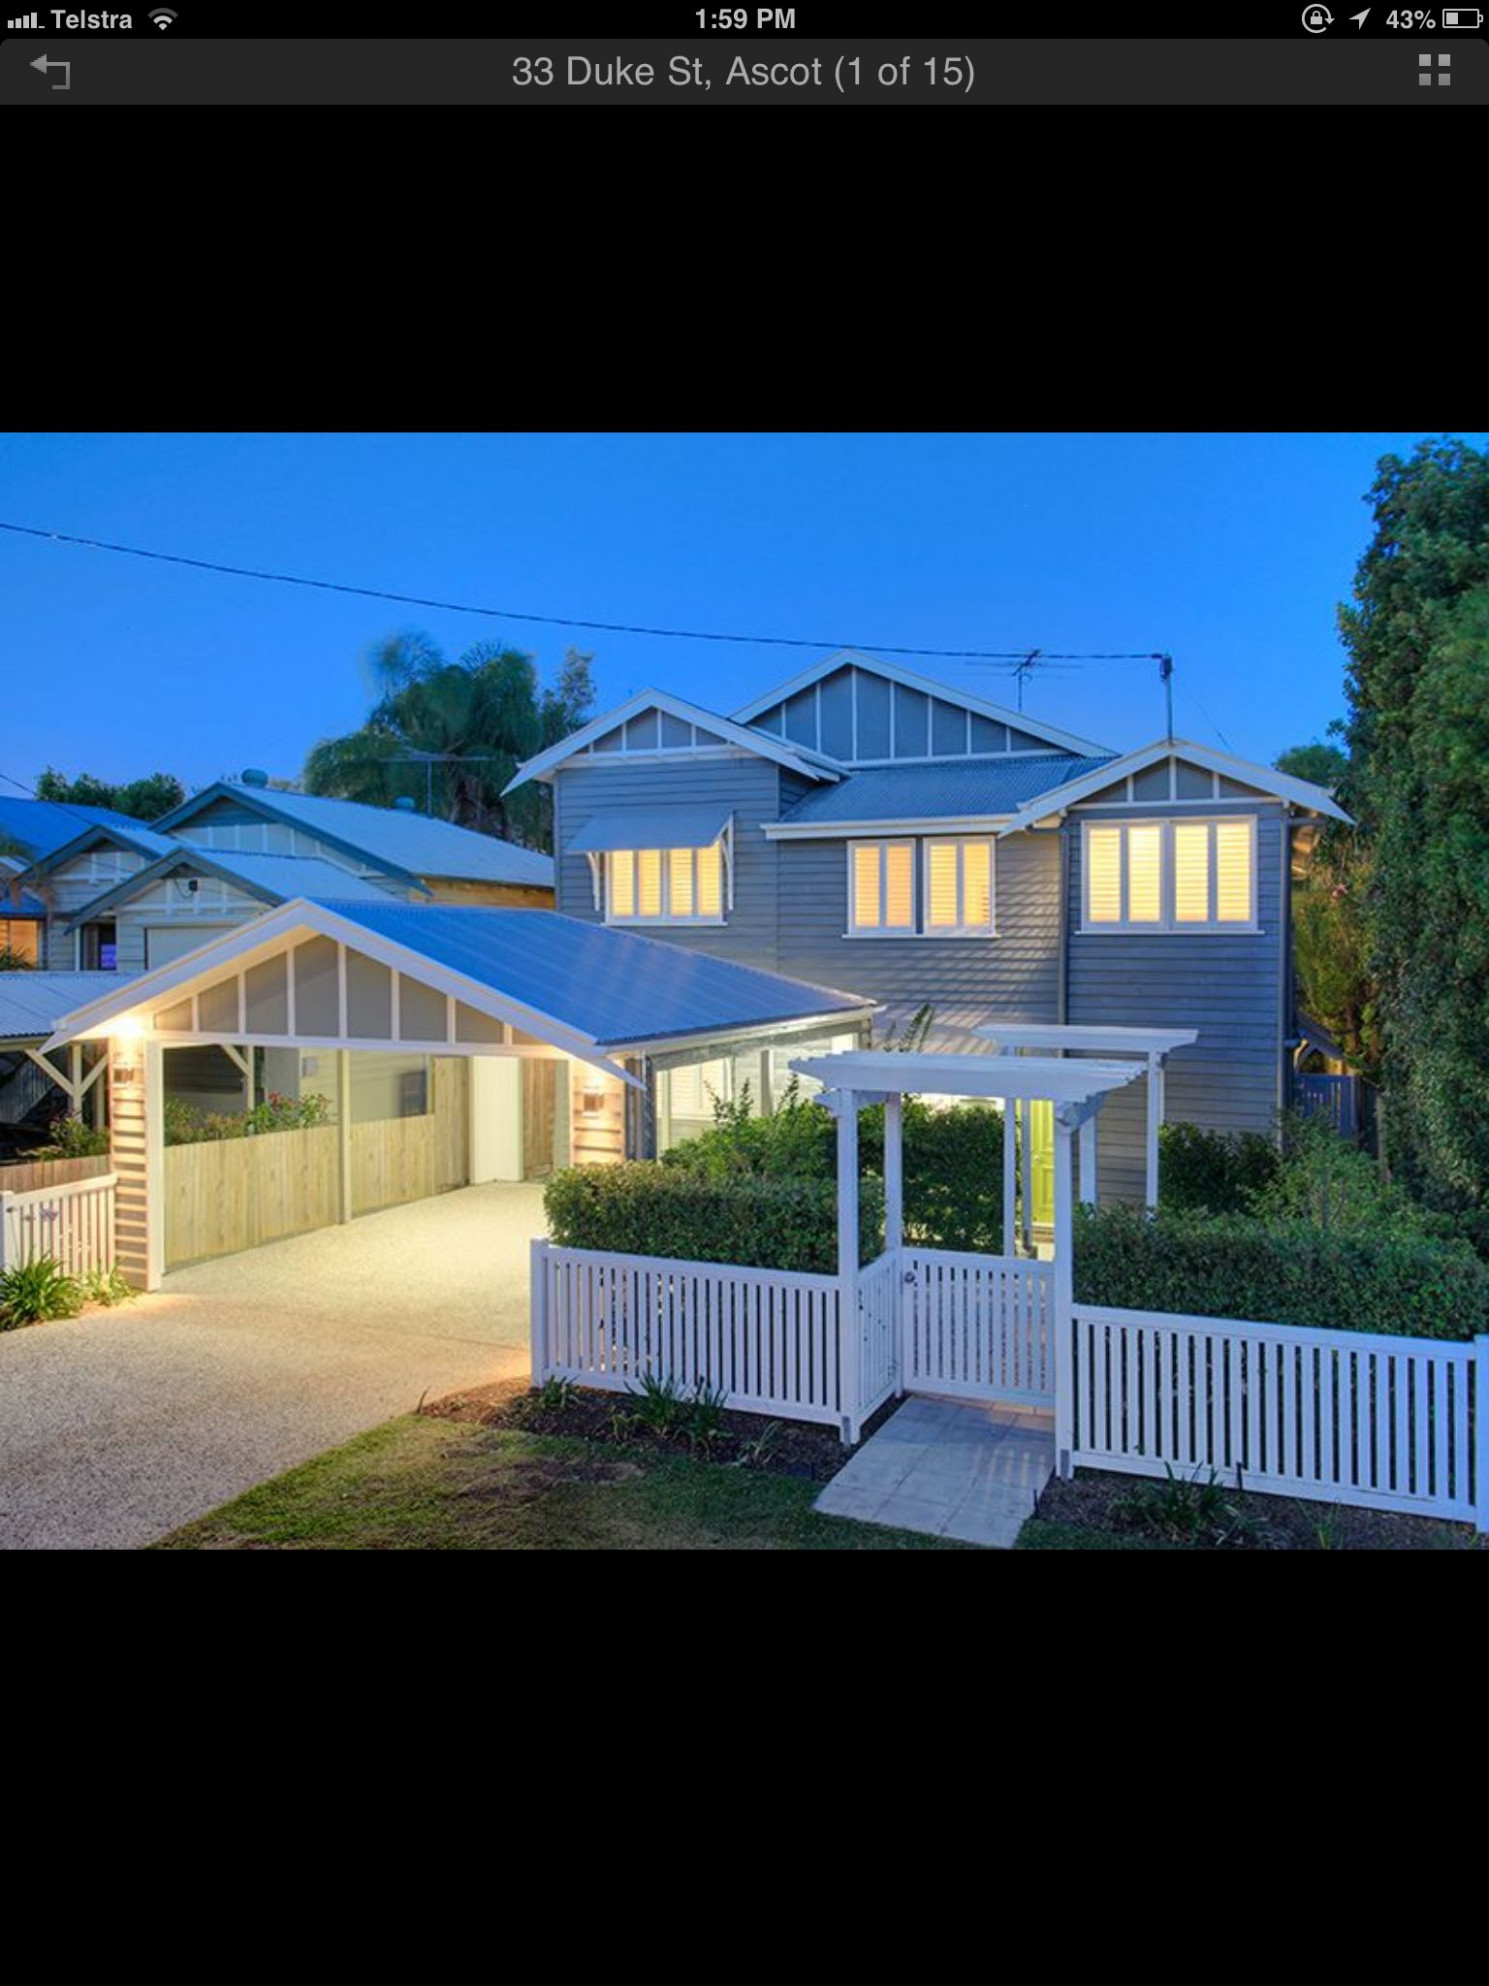 Carport And White Picket Fence | Carport In 11 | House ..